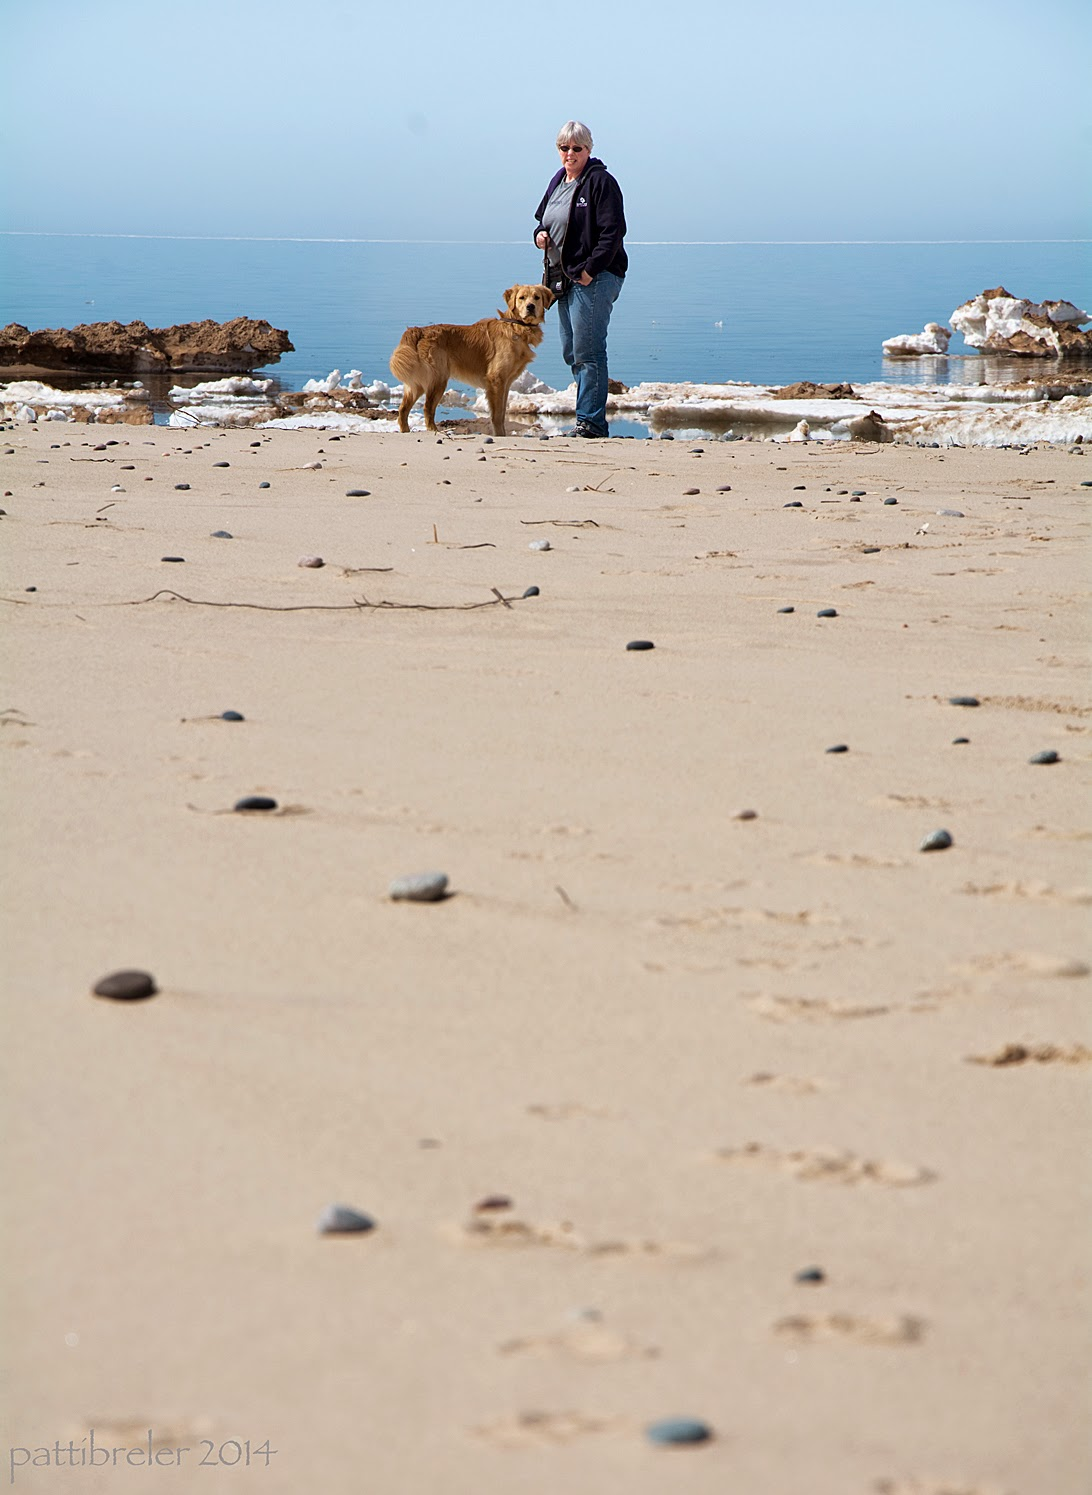 A far-away shot of a woman wearing blue jeans, a grey t-shirt and a purlple zipped sweatshirt open over it, standing on the shore of Lake Superior holding a leash in her left hand. The leash is attached to a golden retriever puppy who is standing on the left toward her, but looking at the camera. In the long foreground is a sandy beach iwth small rocks strewn about. There are dirty small ice bergs floating in the blue water behind them. The sky is about the same blue as the water and the horizon can barely be discerned.